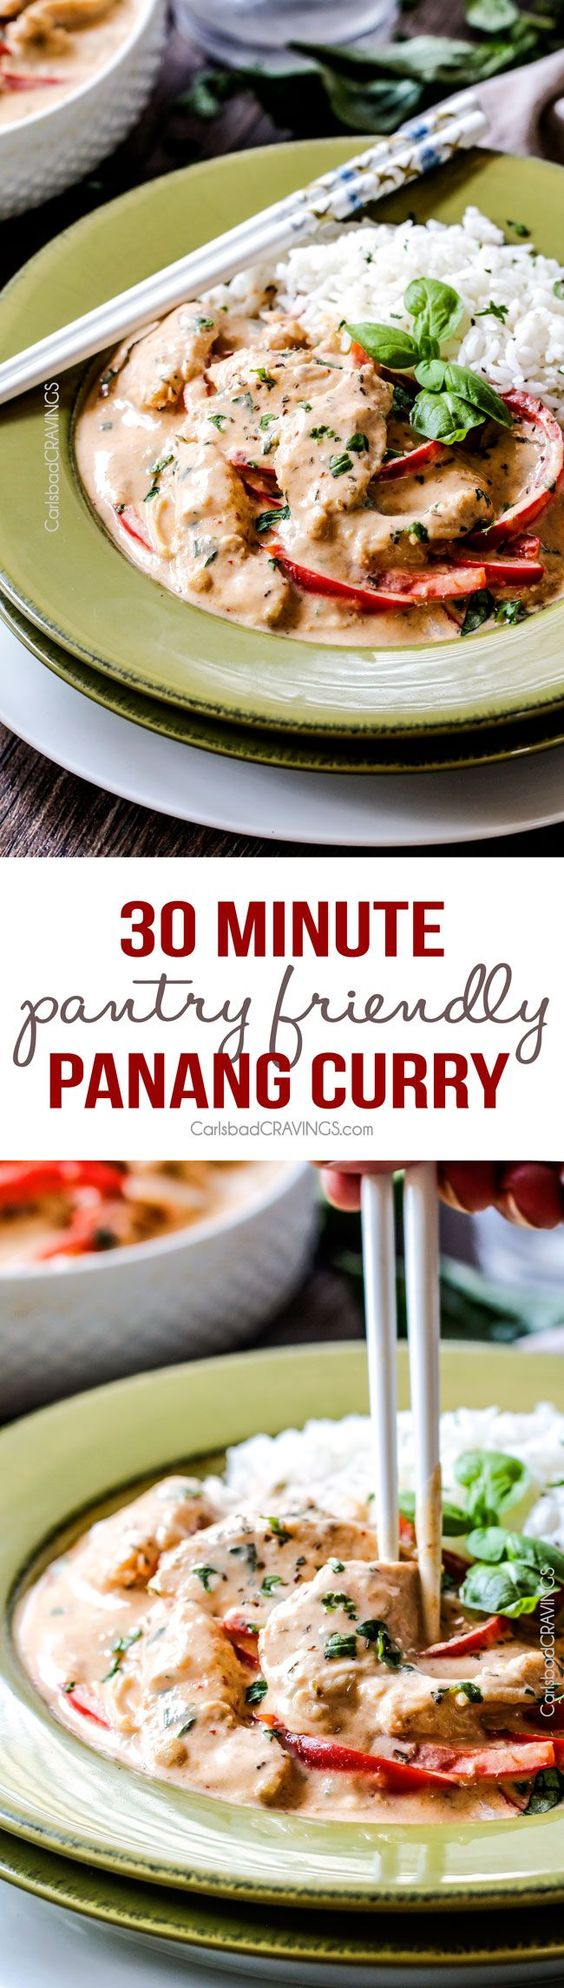 Pantry Friendly quick and easy 30 Minute Chicken Panang Curry tastes better than your favorite restaurant at a fraction of the price with easy to find ingredients!